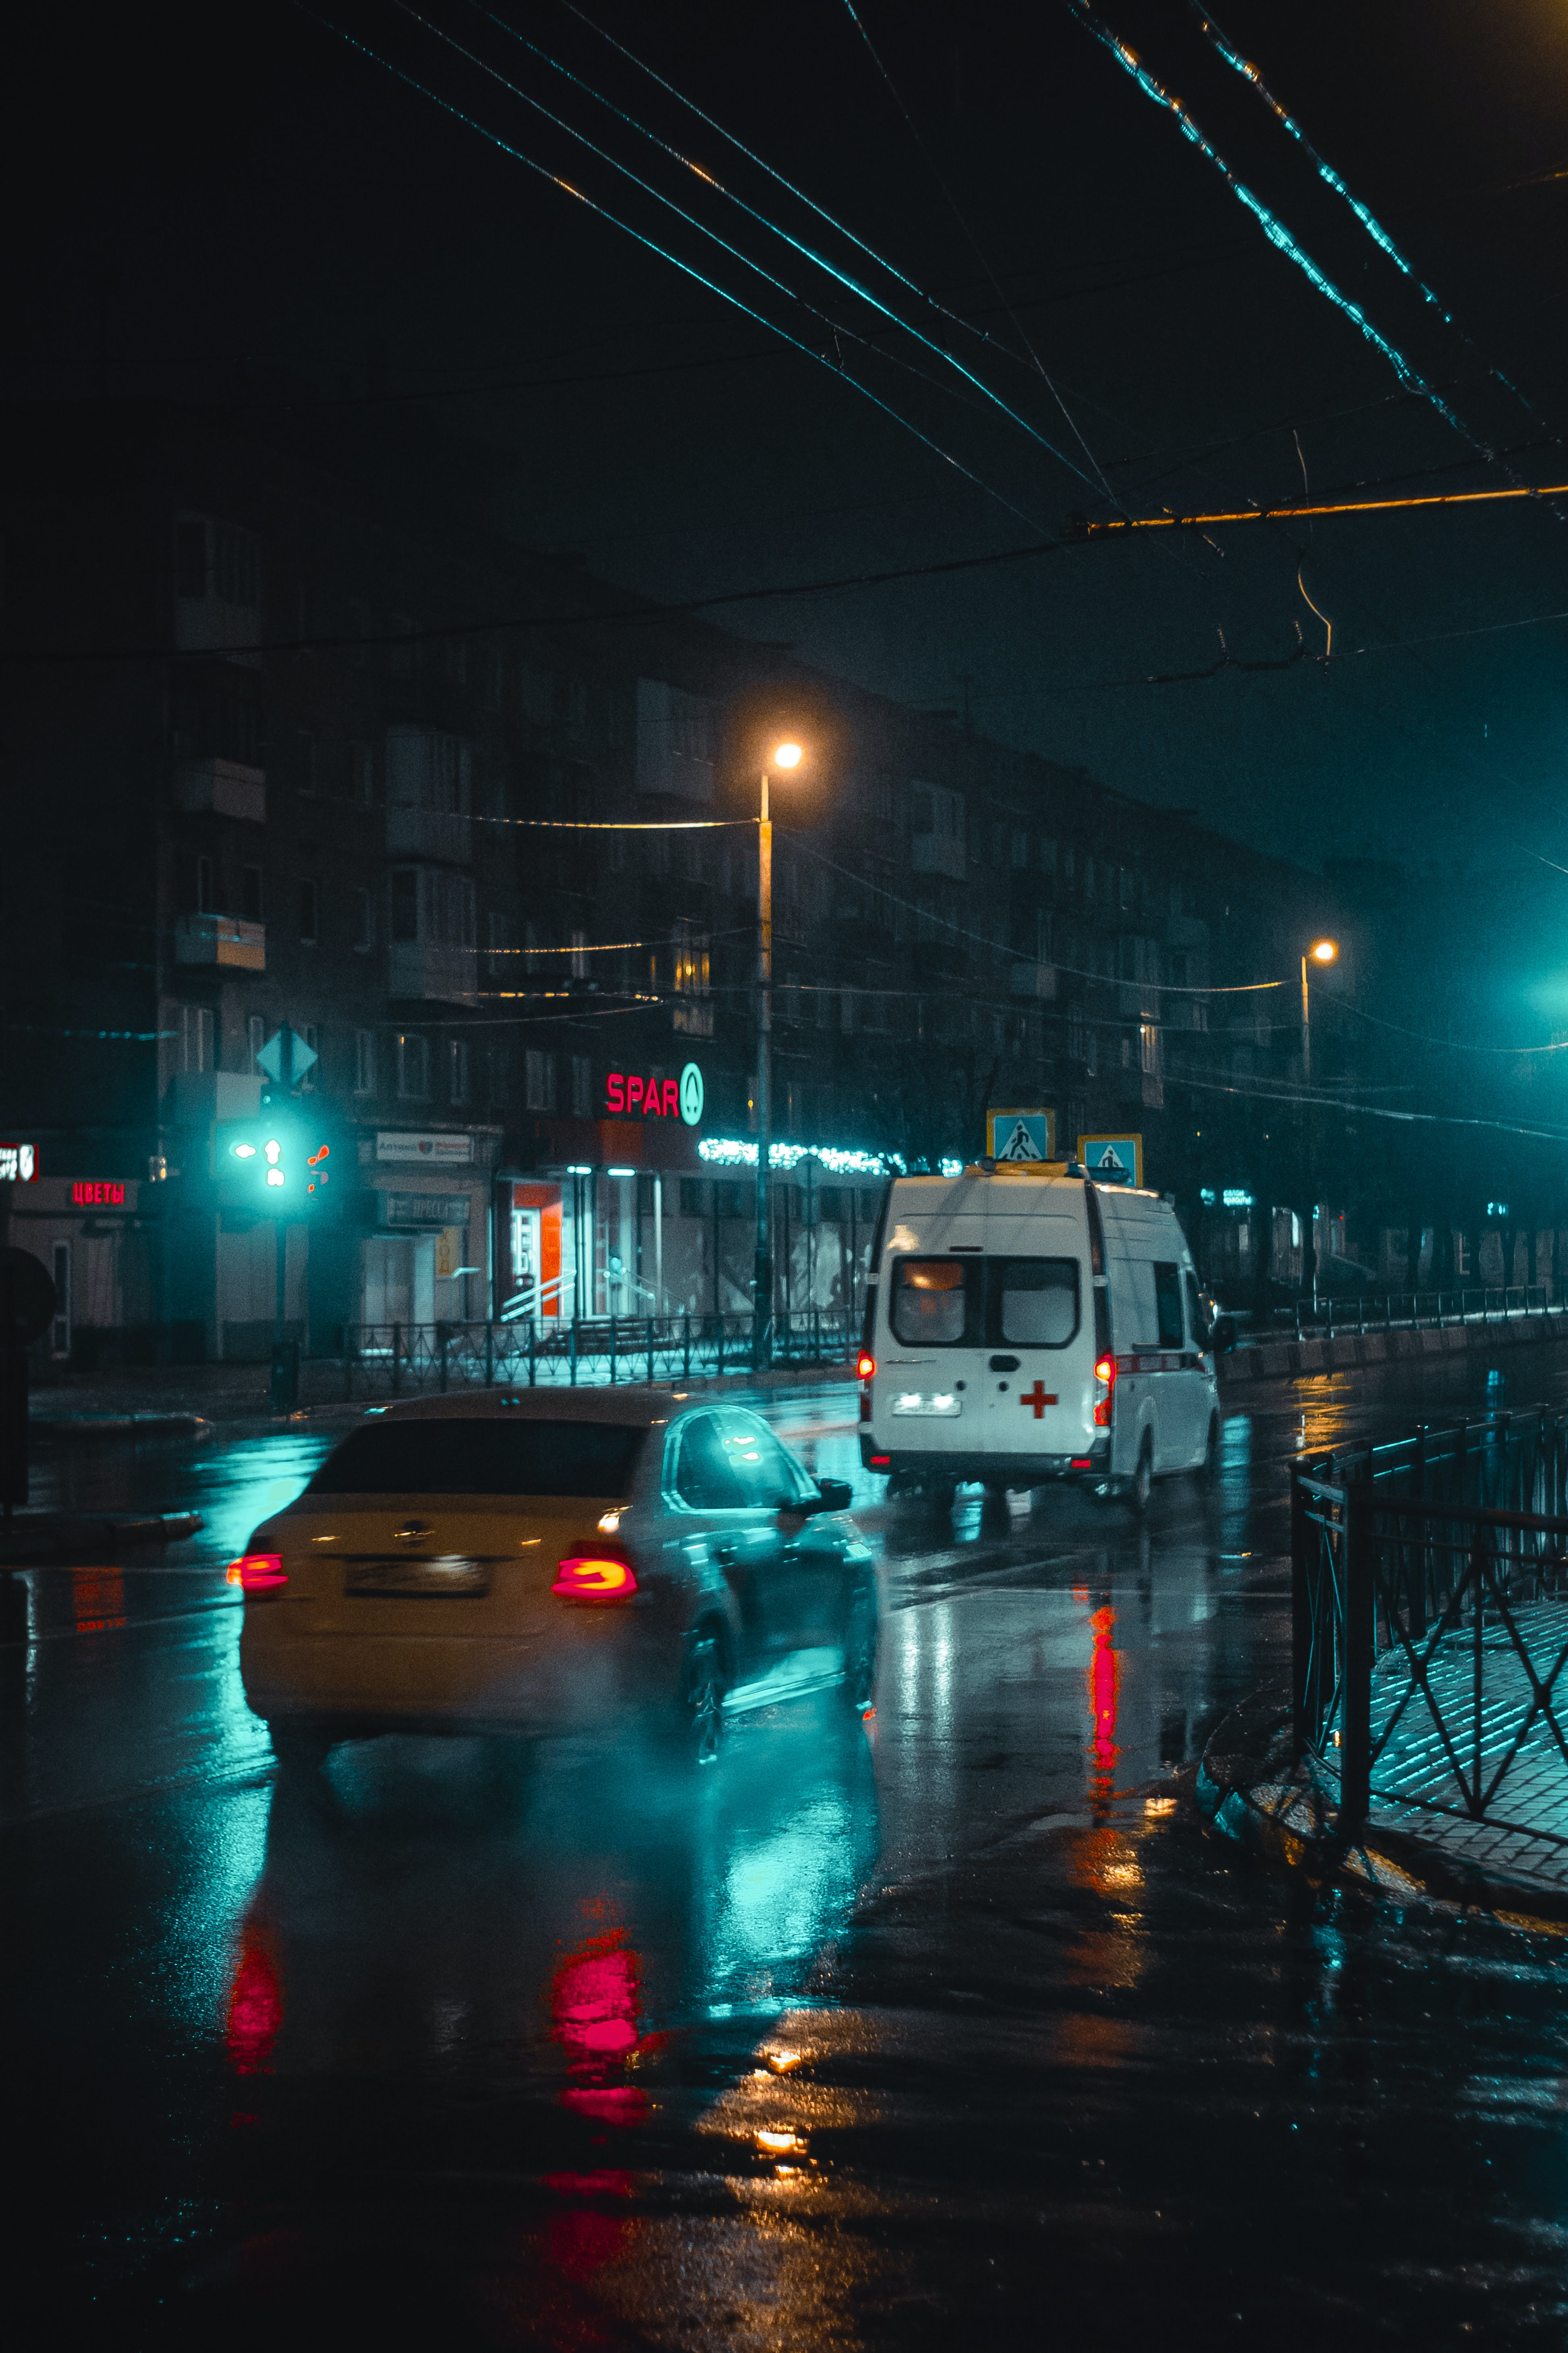 White Minivan Travelling on Road during Nighttime